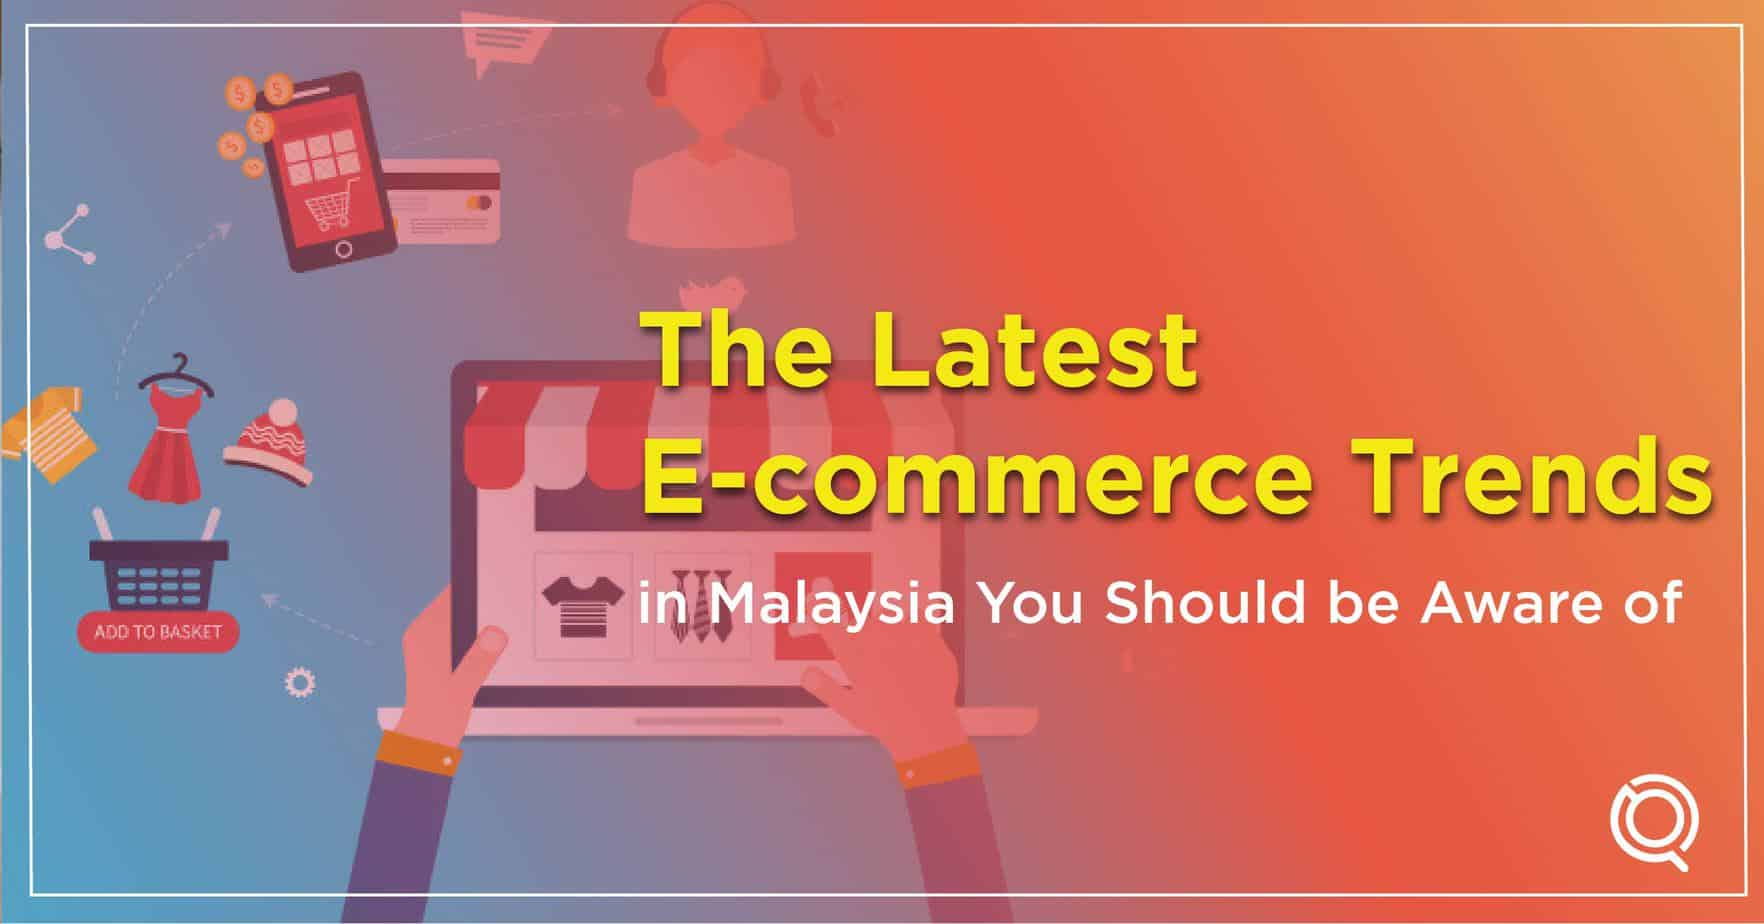 What Is There to Know About The Latest E-commerce Trends in Malaysia - One Search Pro Trusted Digital Marketing Agency in Malaysia